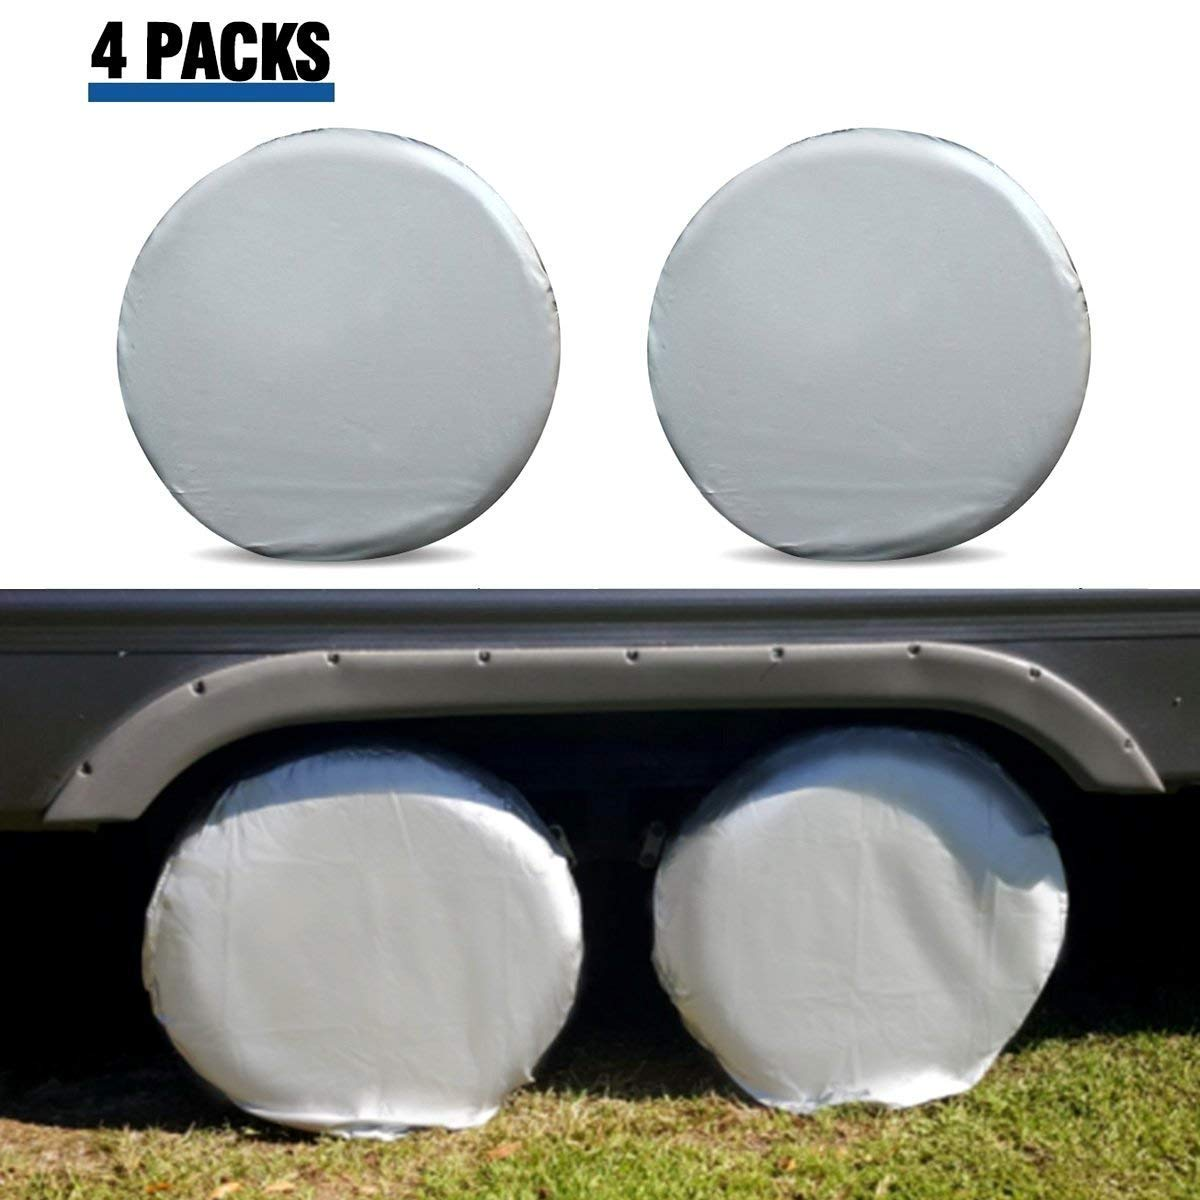 ELUTO Tire Covers for RV Wheel Set of 4 Motorhome Wheel Covers Waterproof Oxford Cotton Tire Protectors Tire Covers Fits 24'' to 27'' Tire Diameters by ELUTO